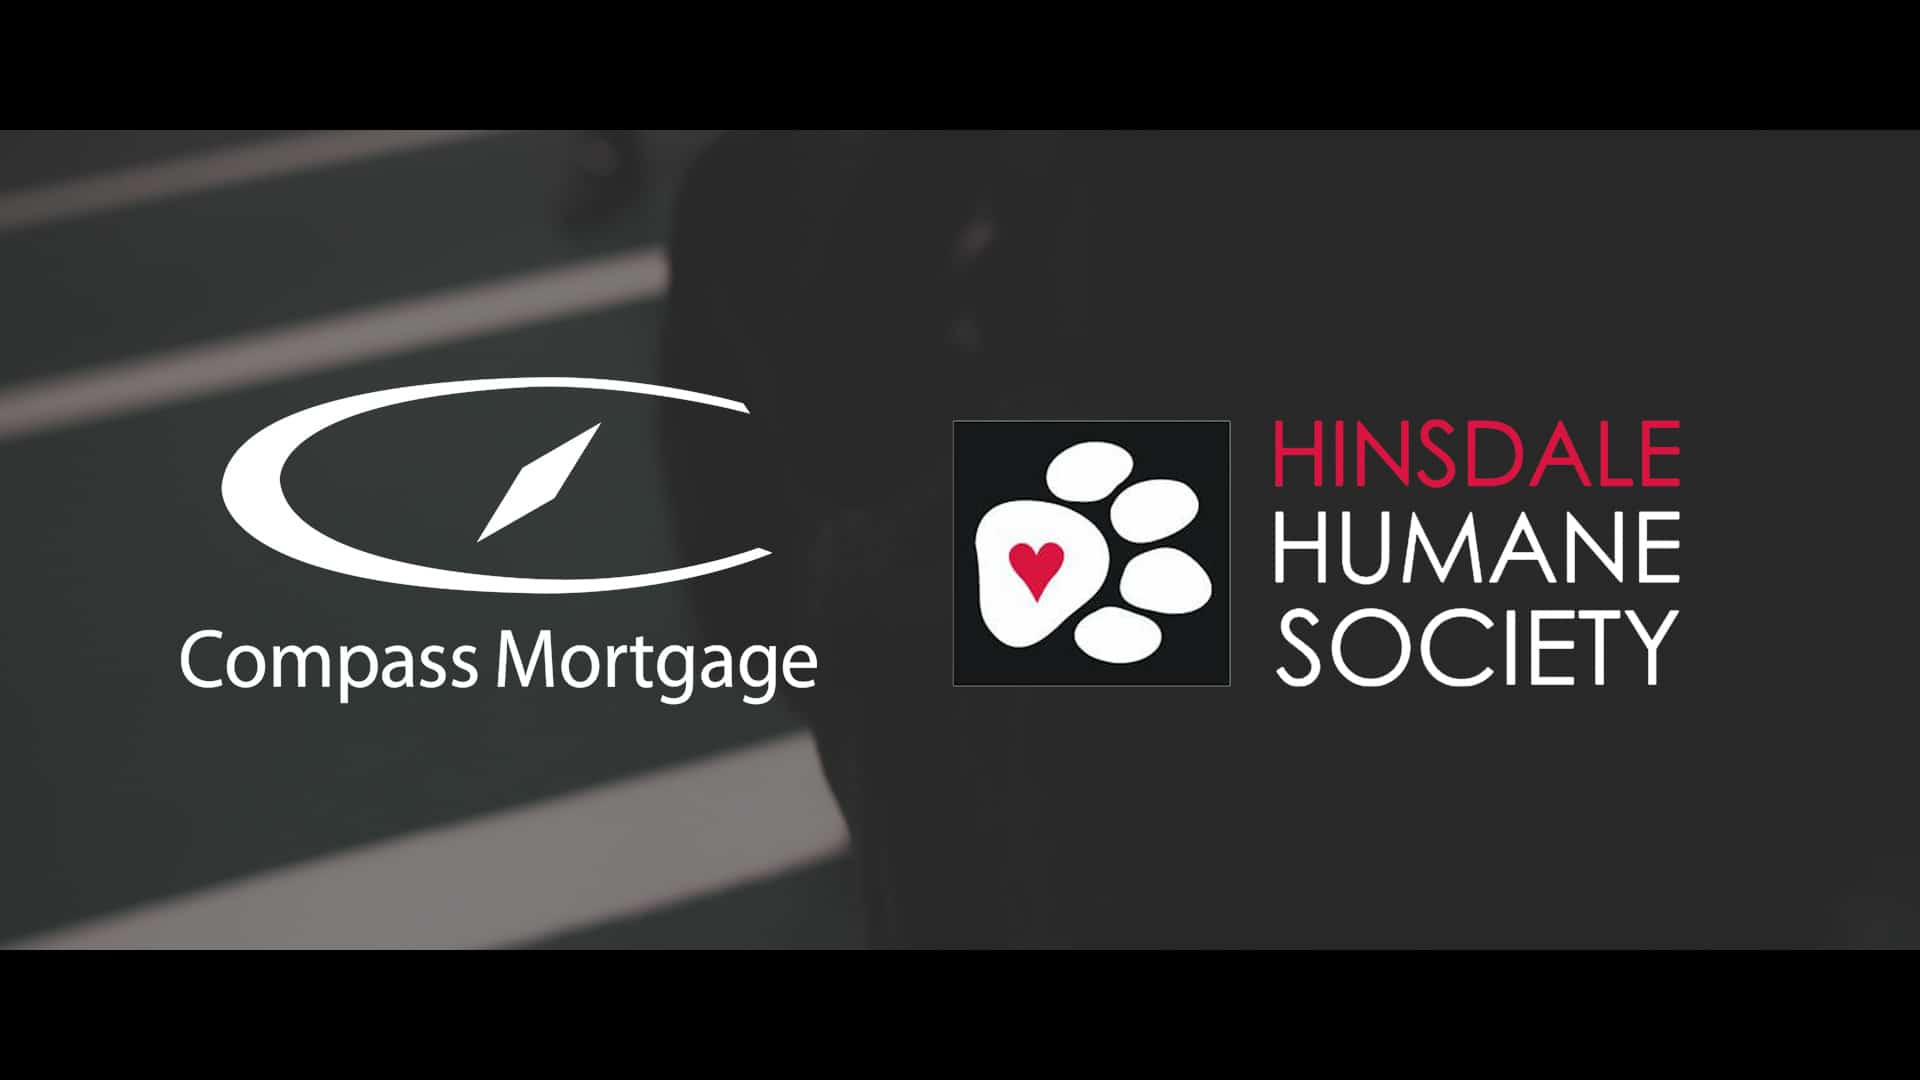 Hinsdale Humane Society, Compass Mortgage